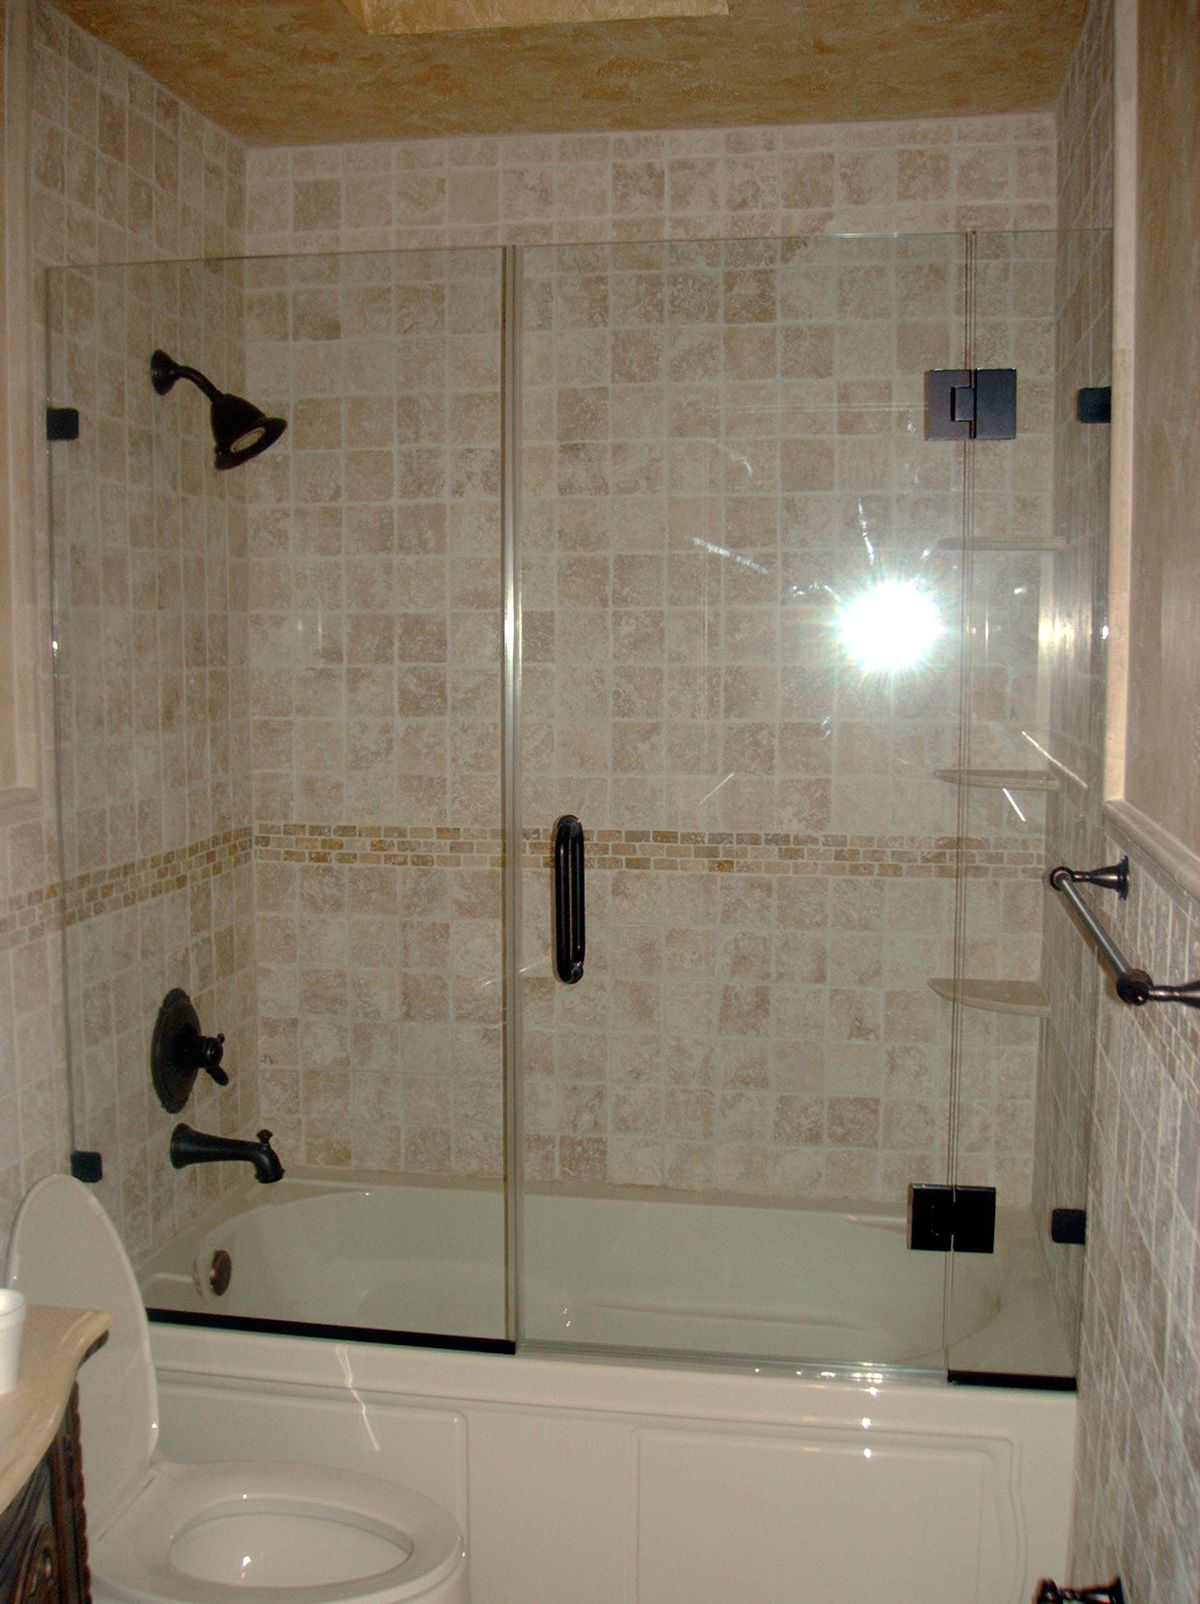 best remodel for tub shower enclosure | Glass Tub Enclosures ...